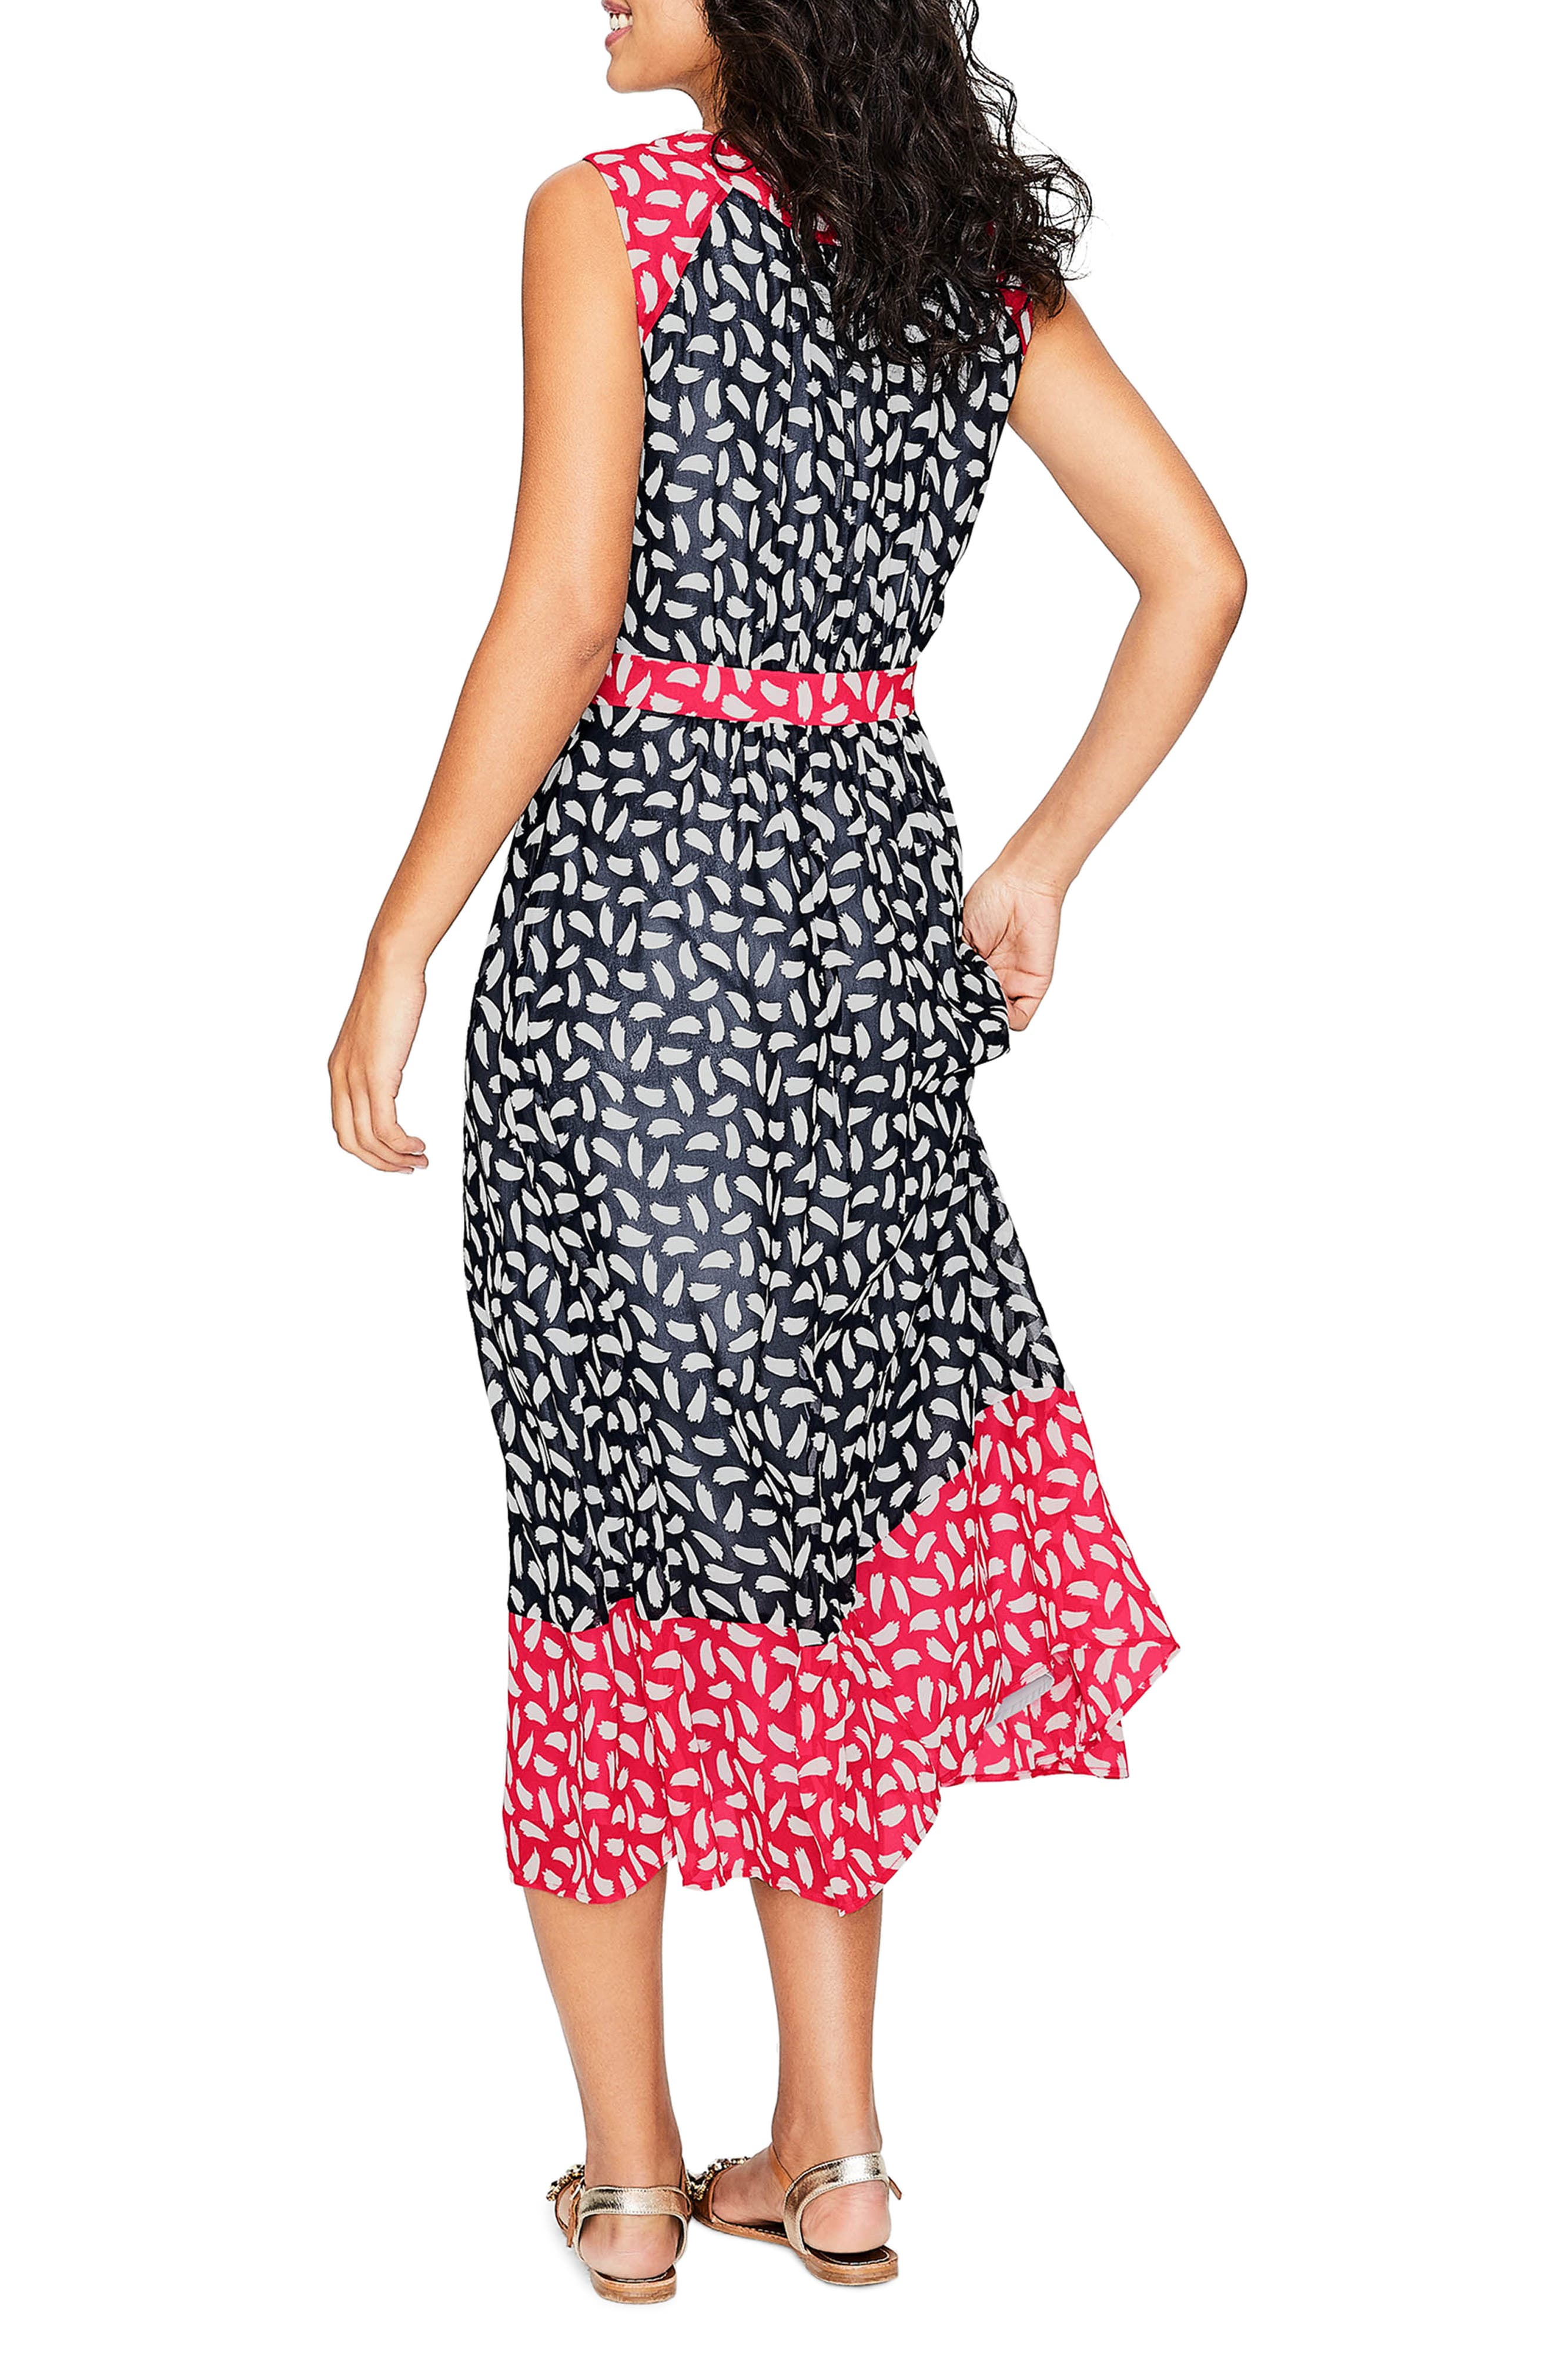 Sylvie Print Sleeveless Dress,                             Alternate thumbnail 3, color,                             Navy Brush Stroke